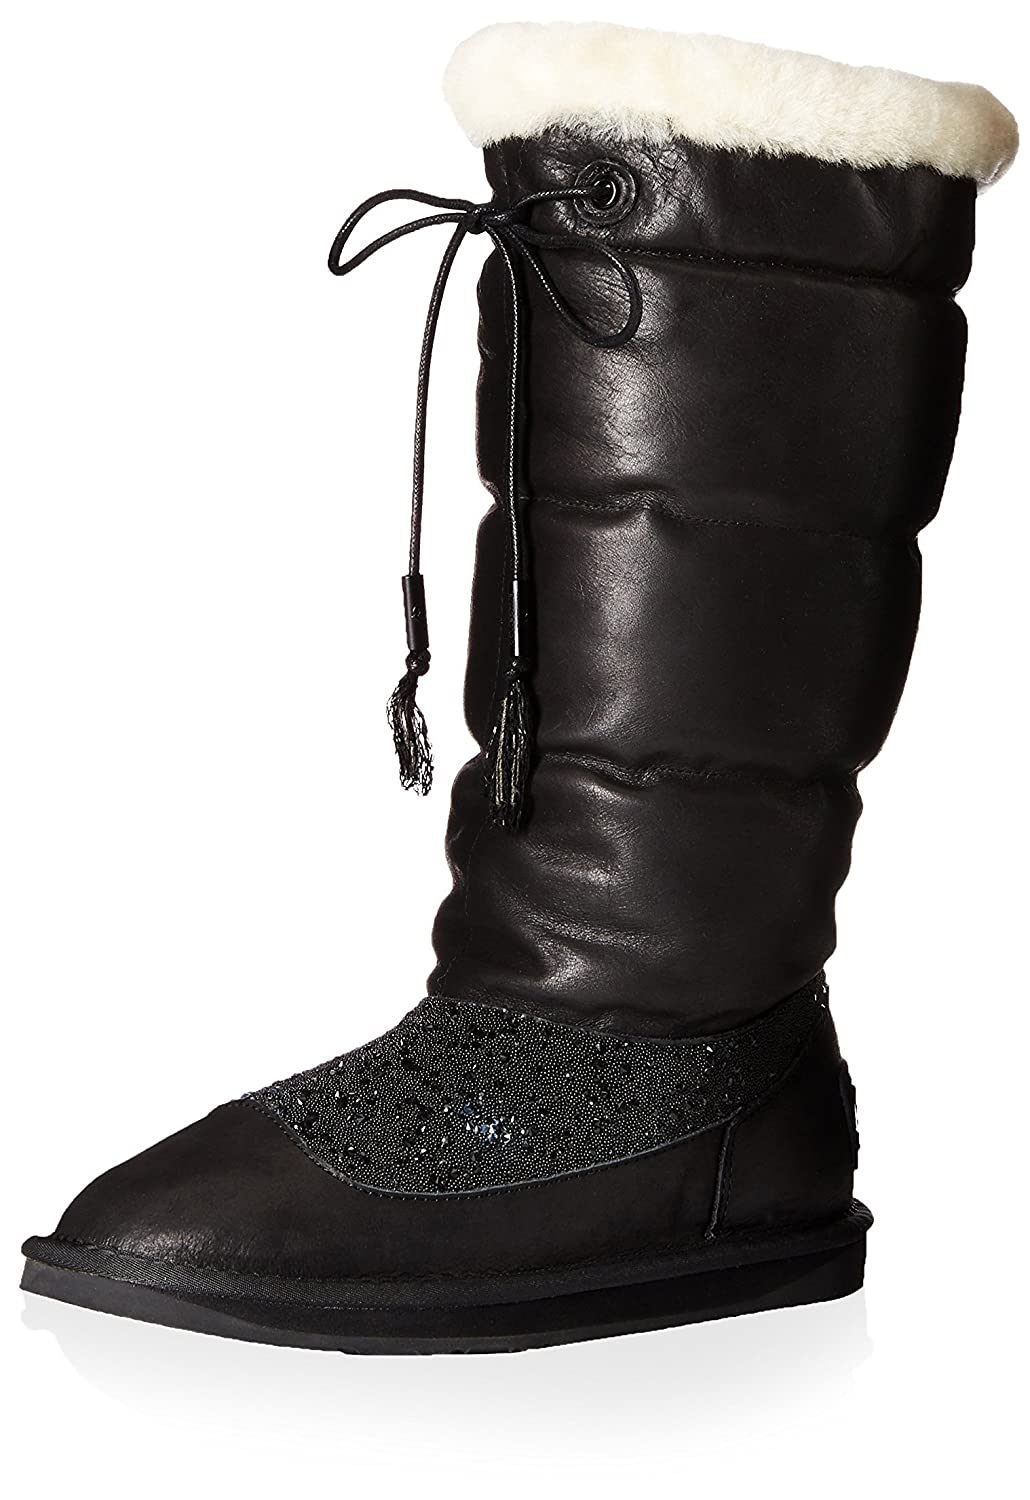 Australia Luxe Collective Women's Earth Crystal Tall Snow Boot